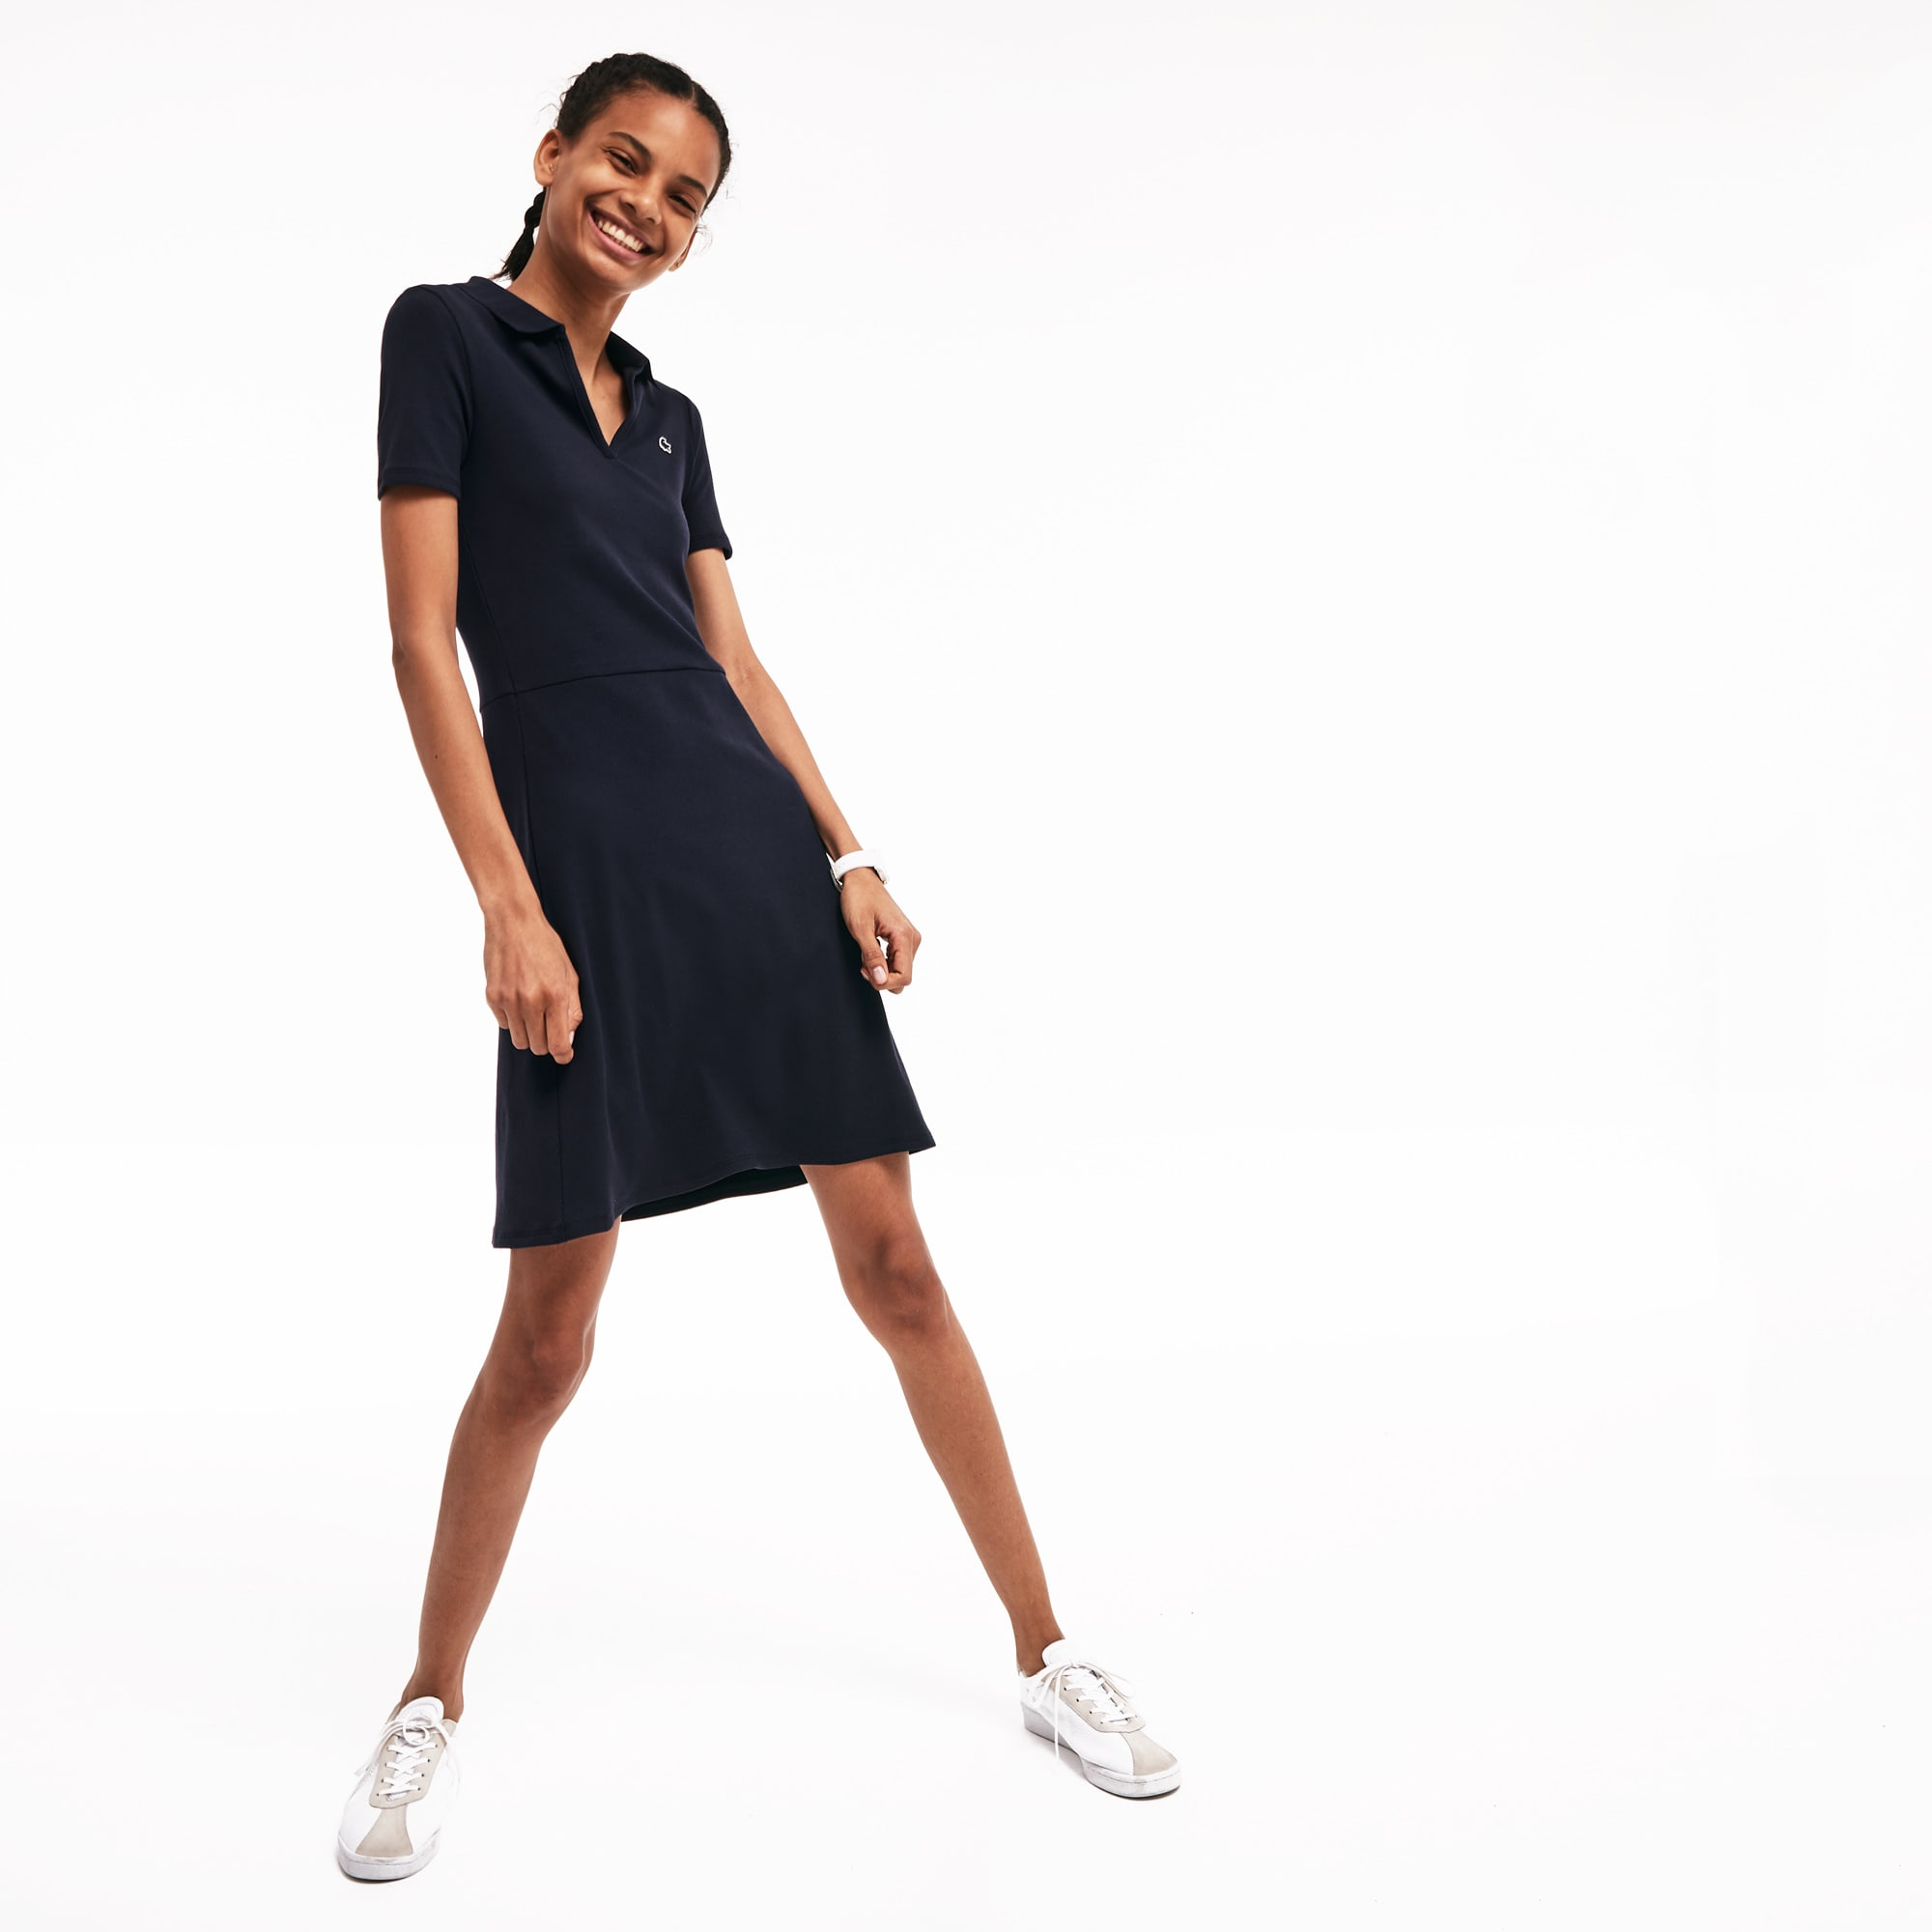 b842122d627e 50% off. Women's Lacoste LIVE V-Neck Ribbed Cotton Blend Polo Dress